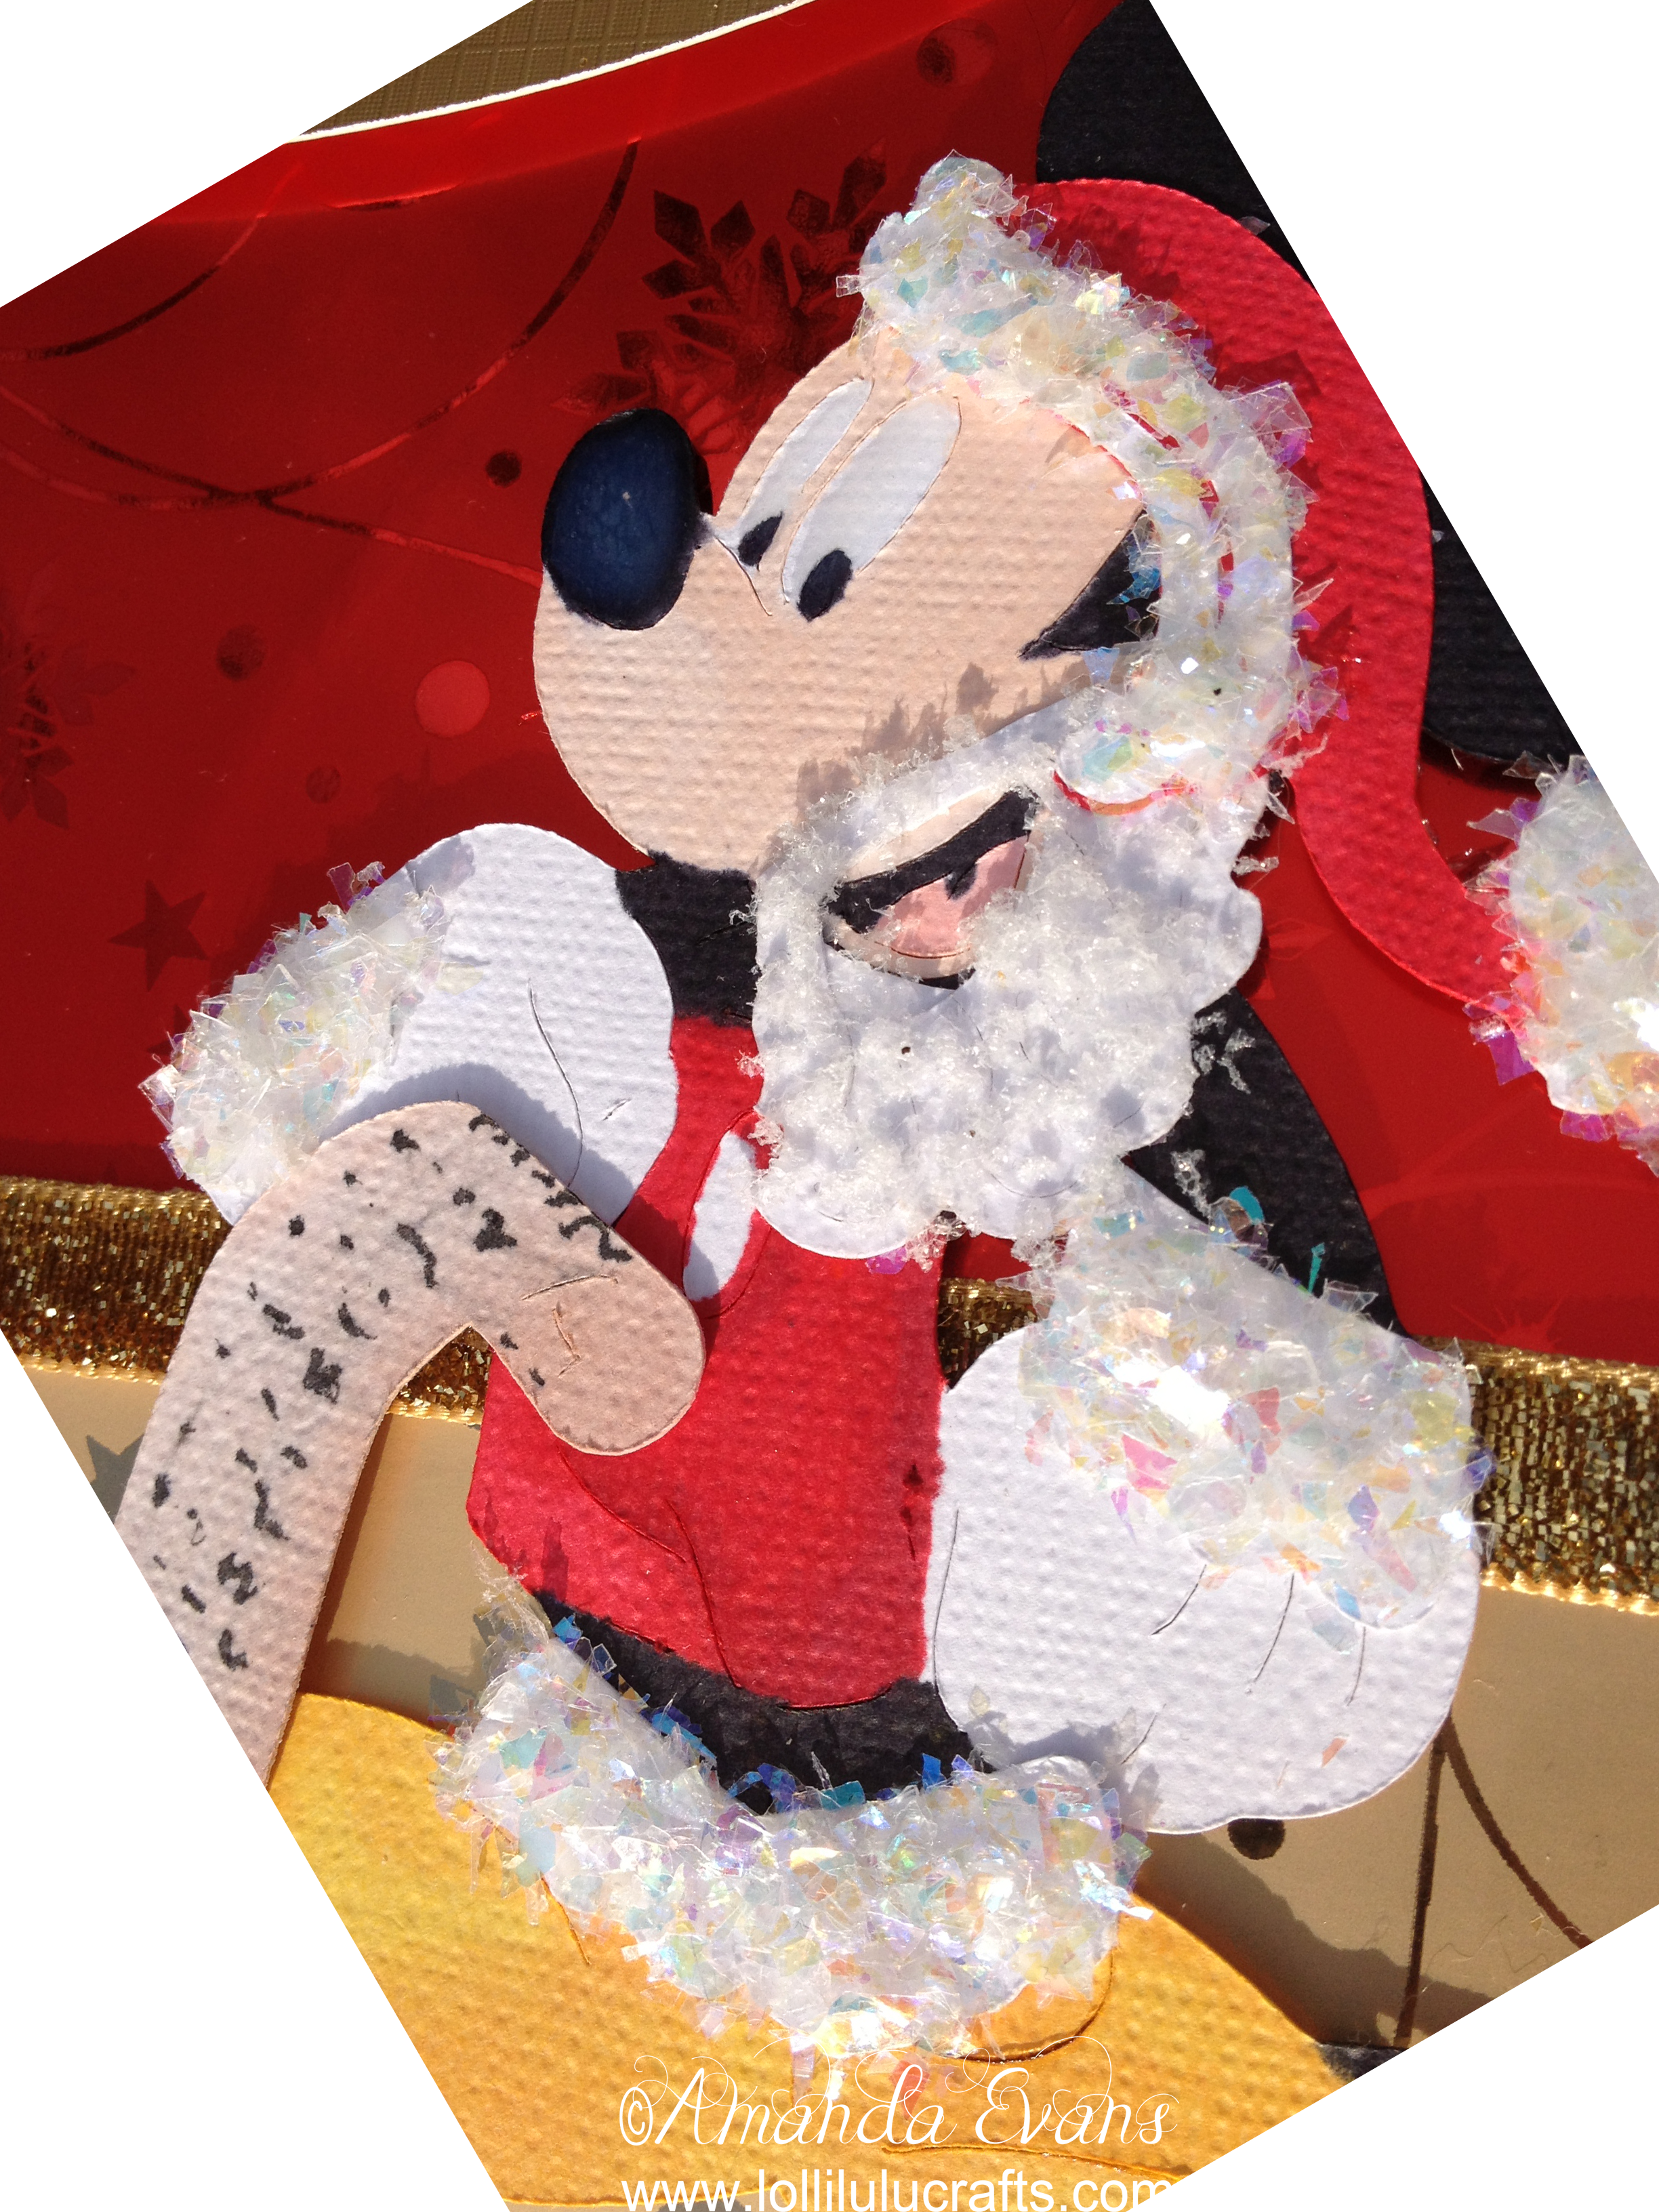 # TBT November Cricut Disney Santa Mickey Card